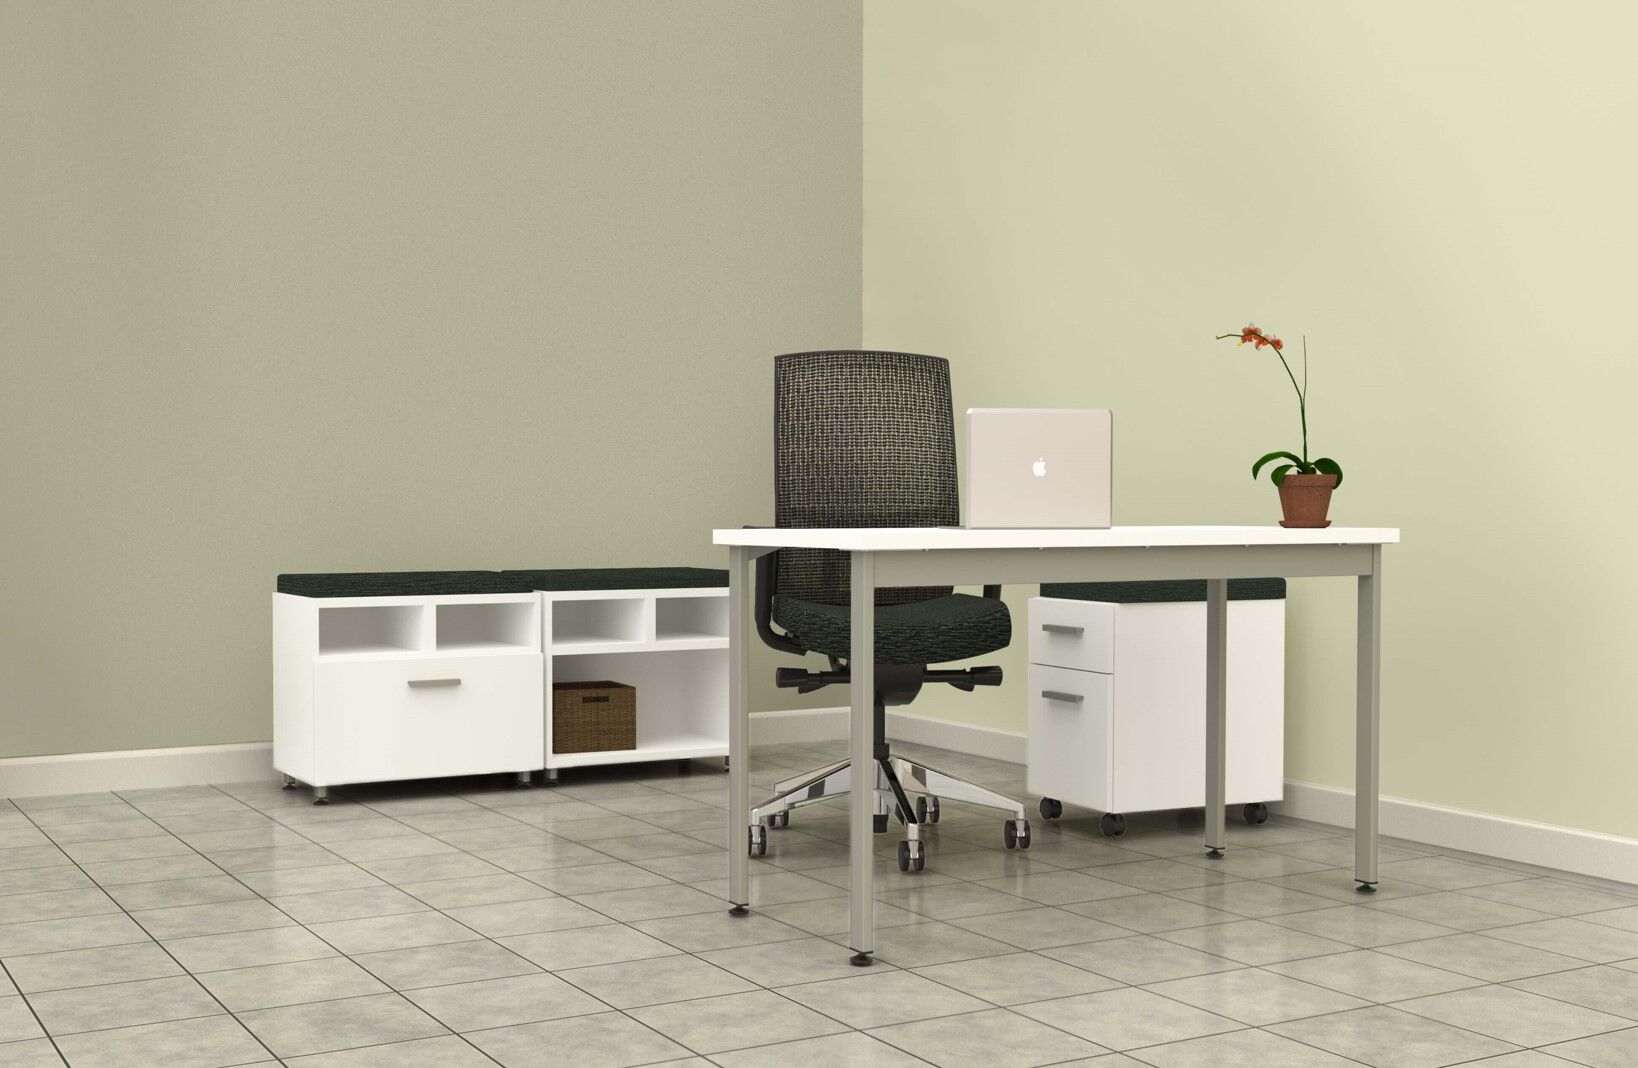 Small l shaped desk CUB e5K13 DWS eZSC15 FPP YAM_preview